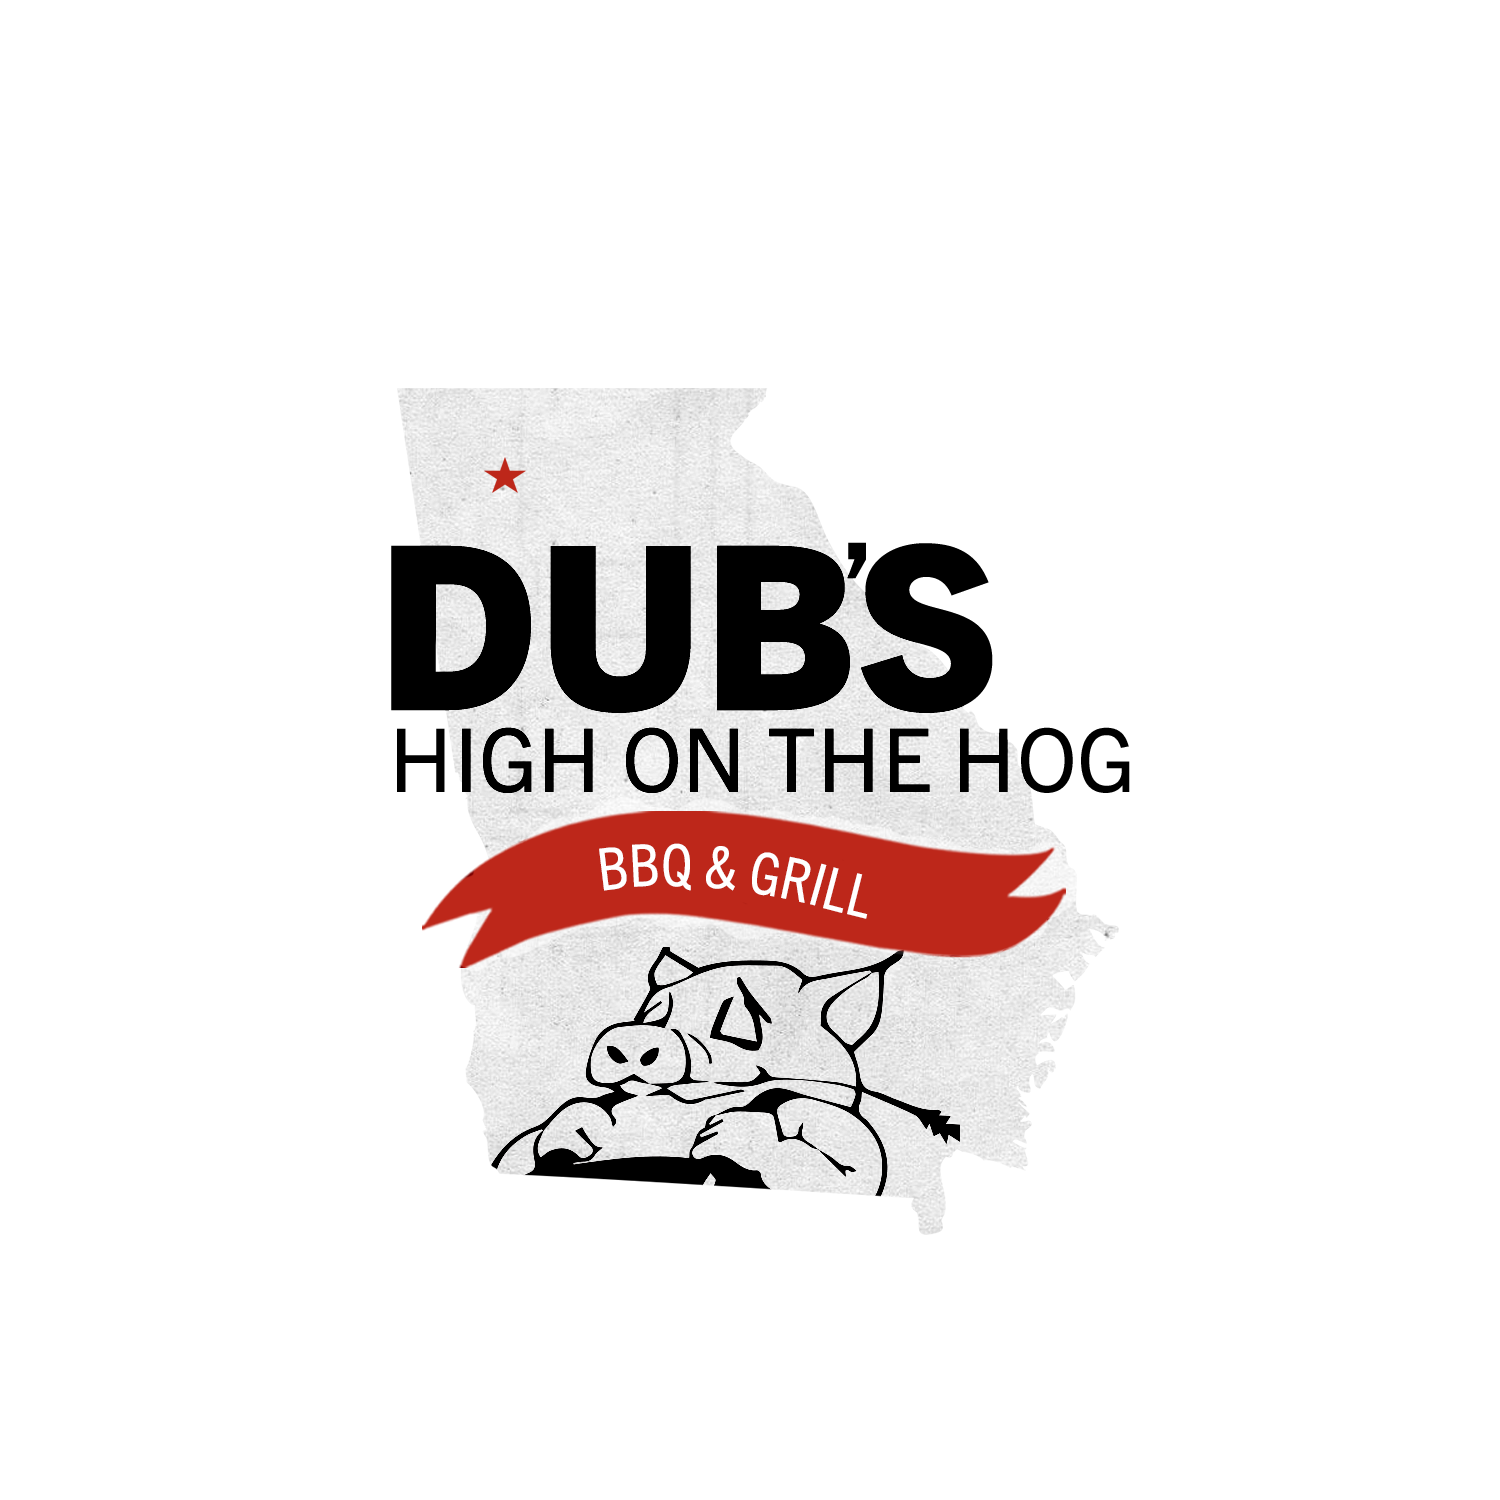 Dub's High On The Hog